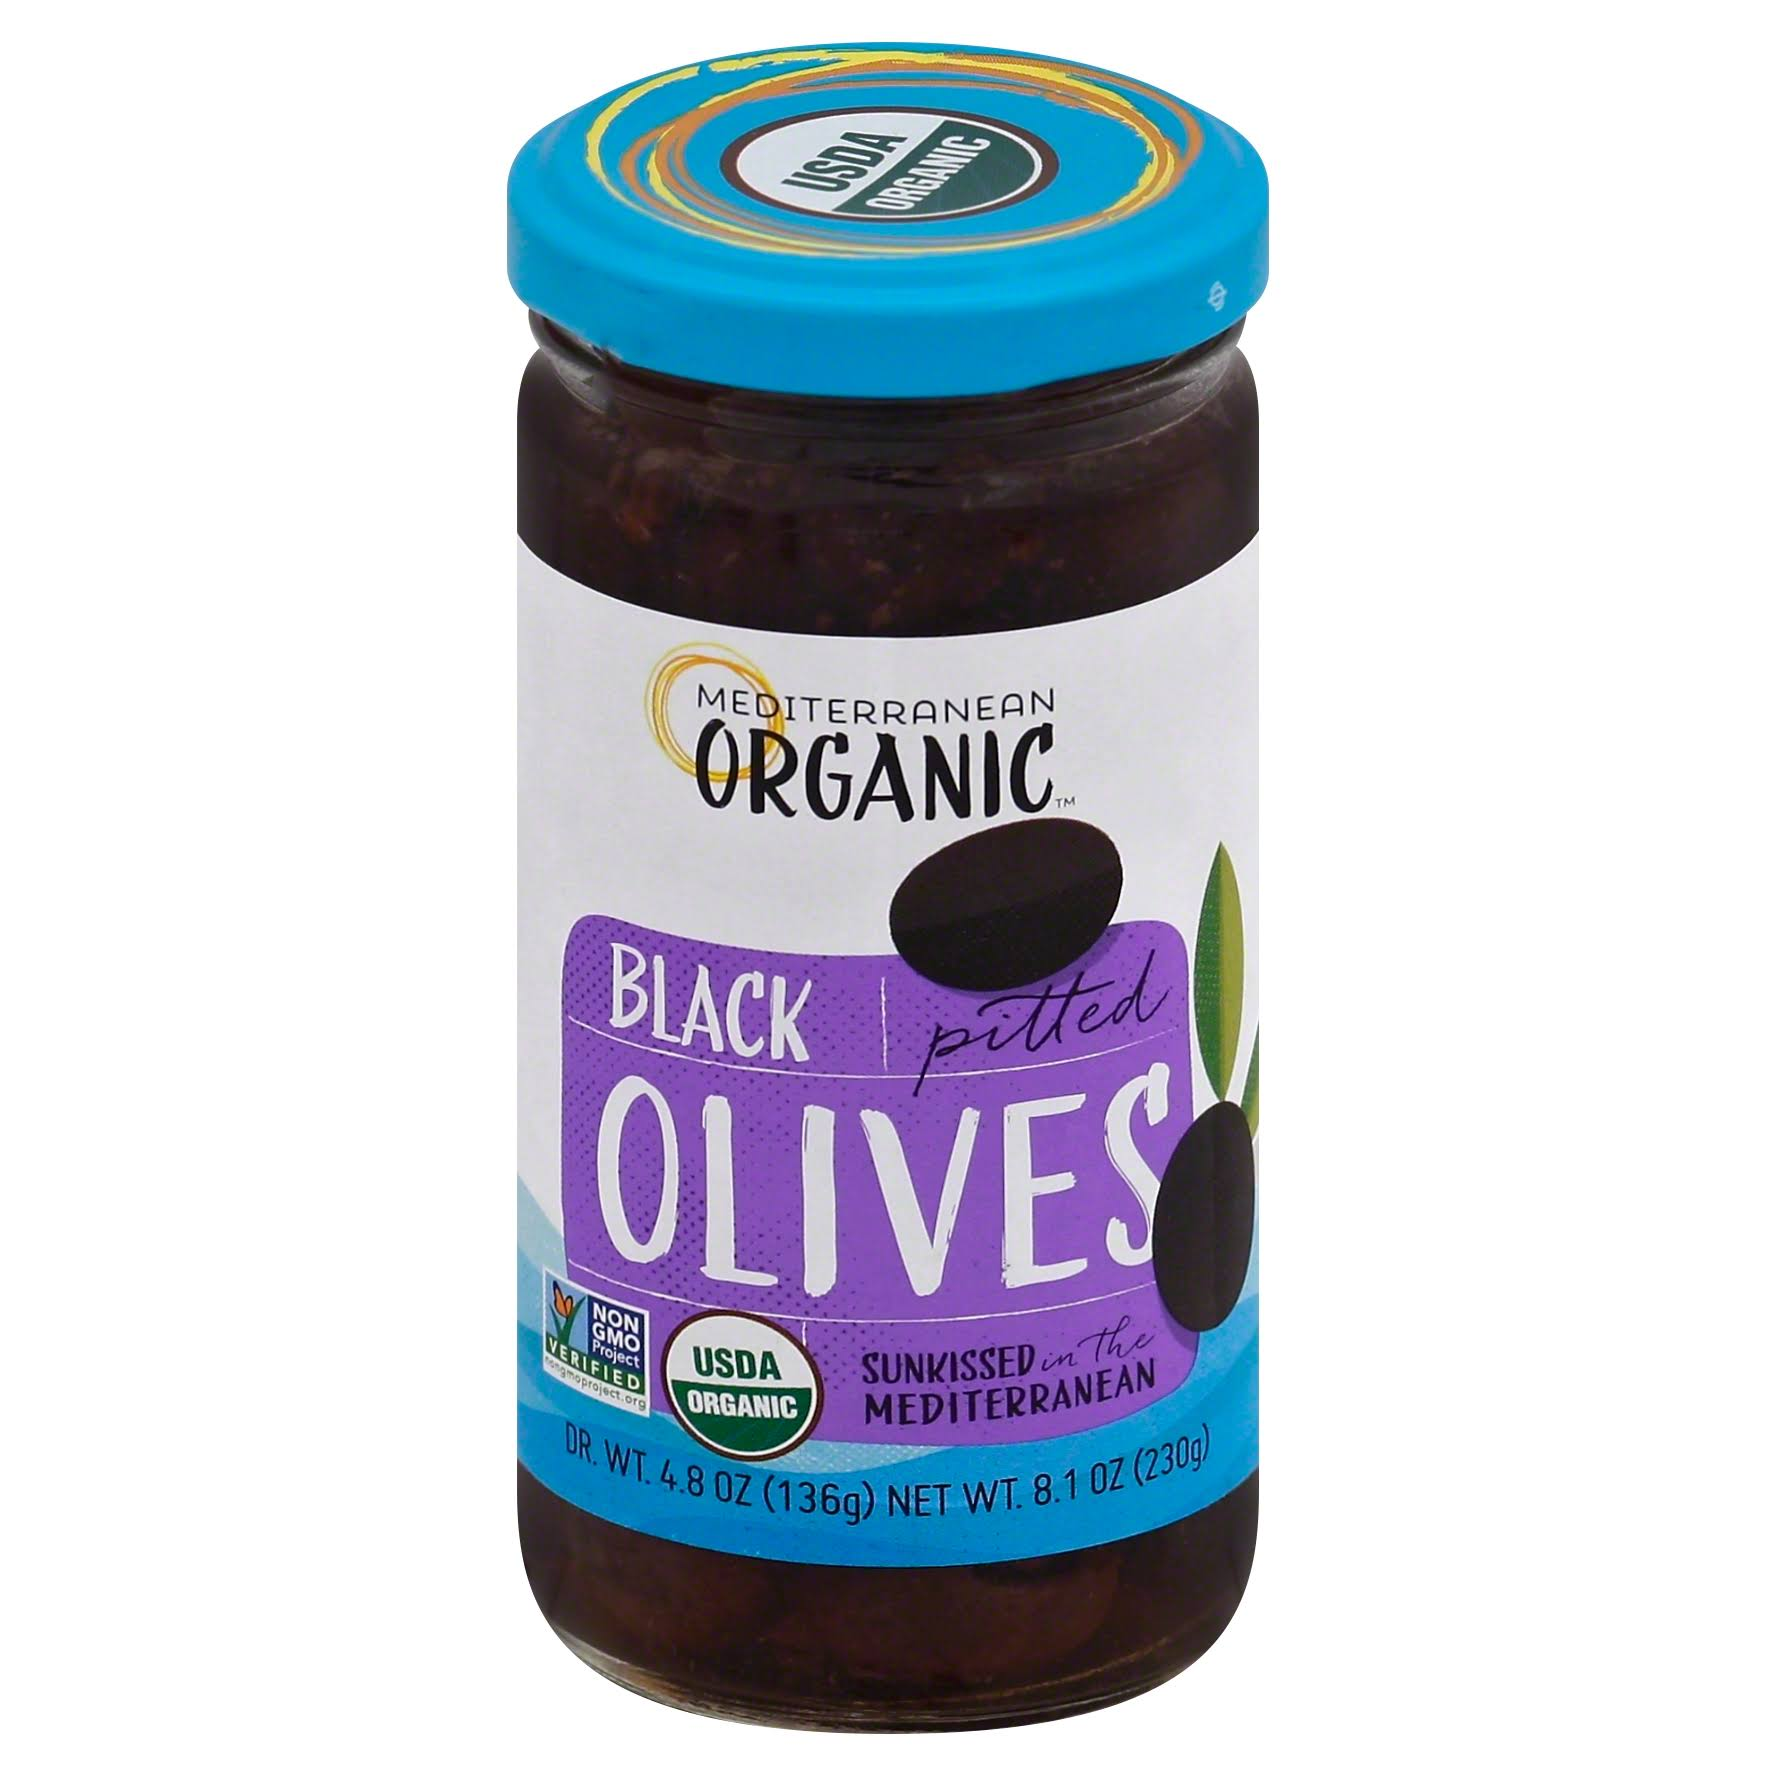 Mediterranean Organic Tree Ripened Black Olives - Pitted, 9oz